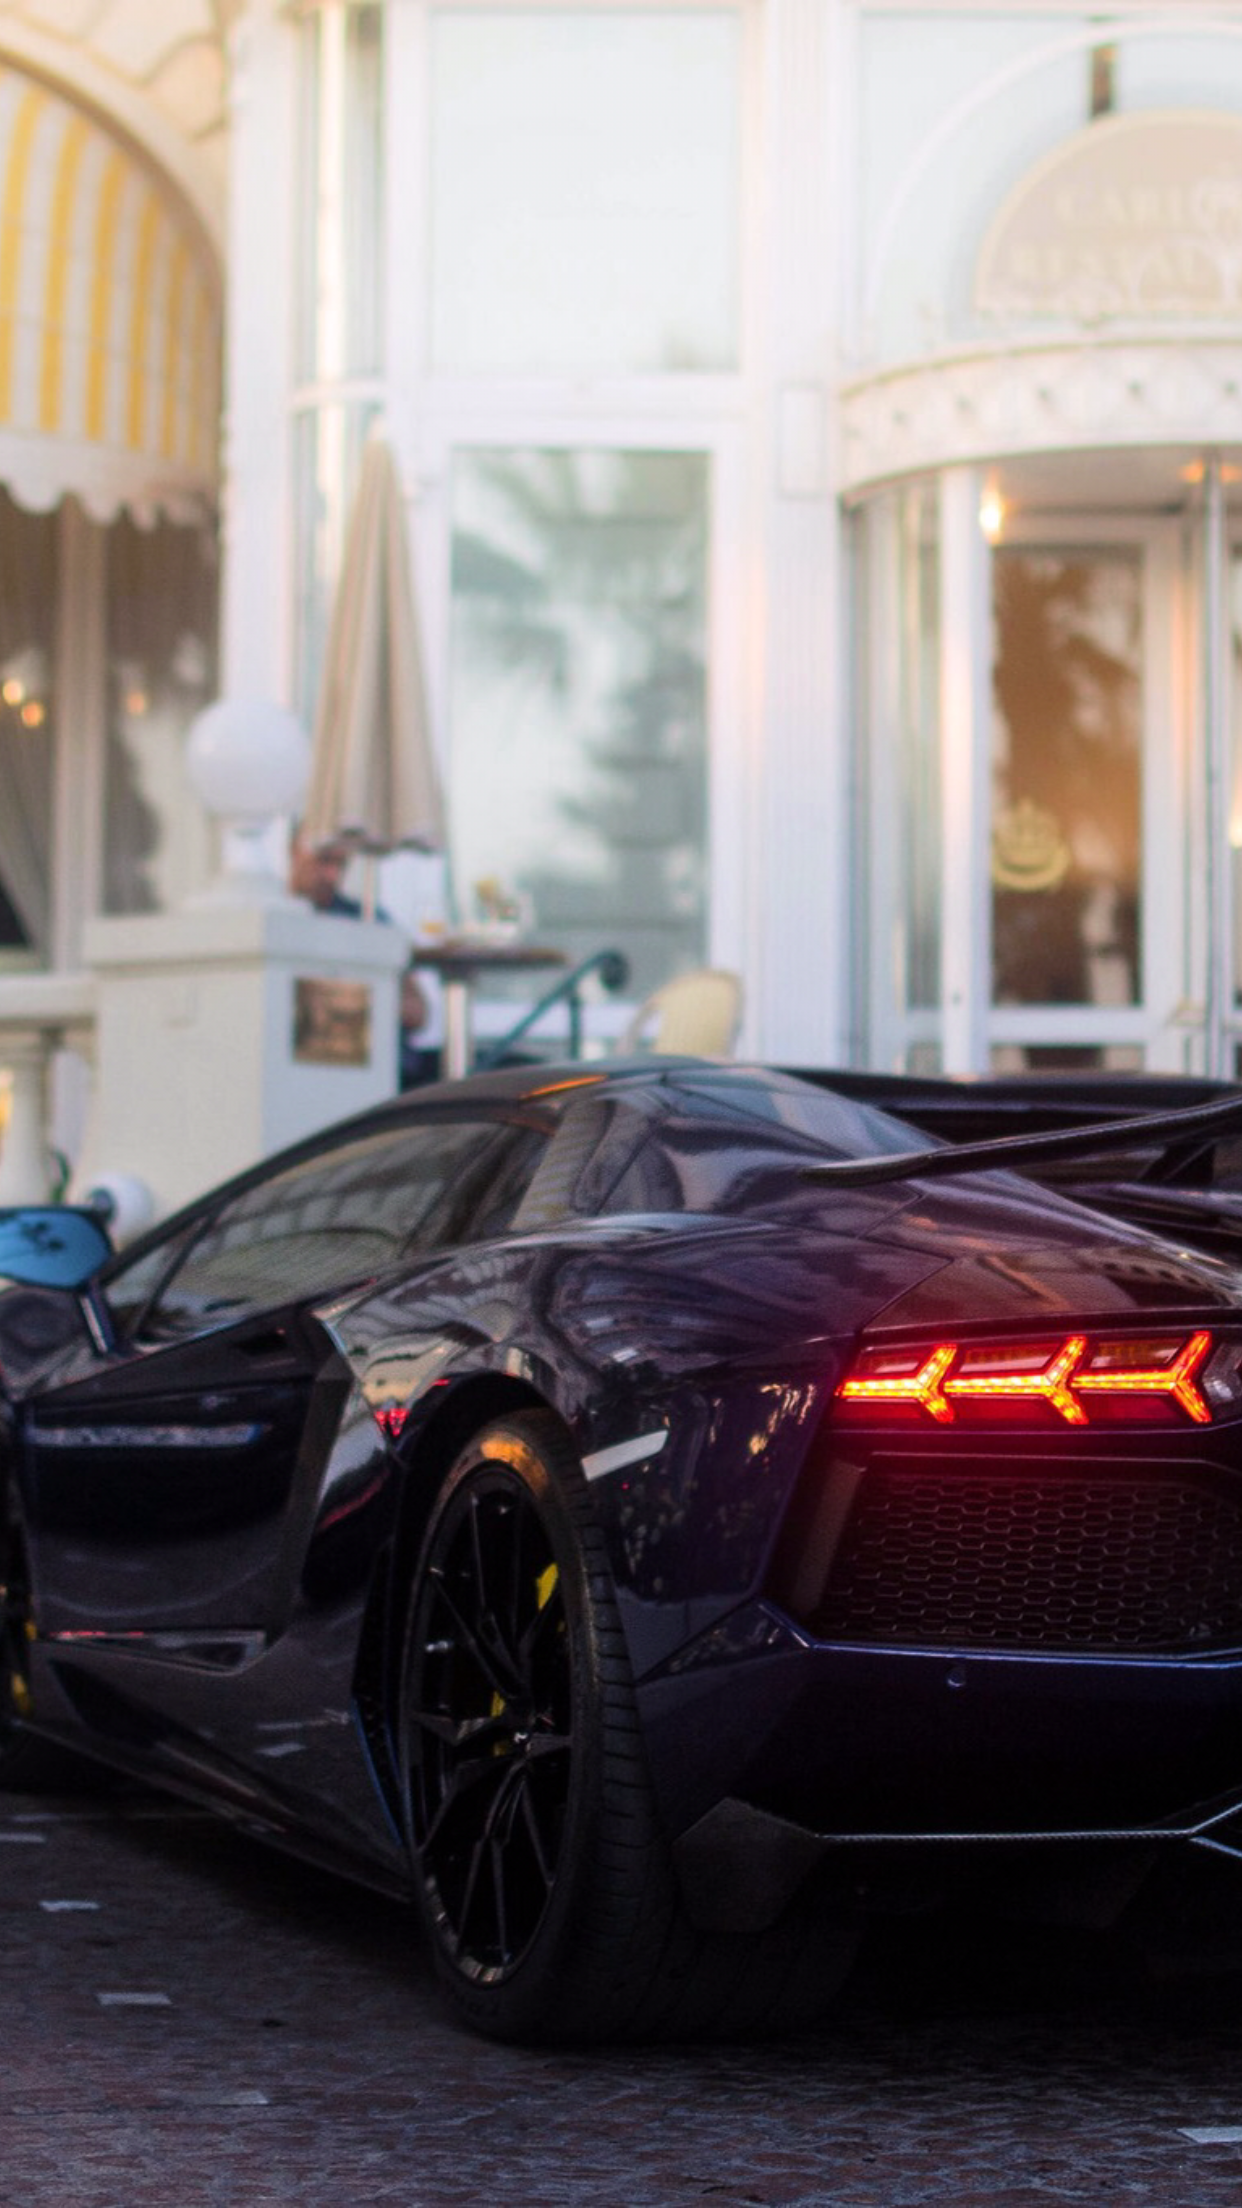 Supercar Black